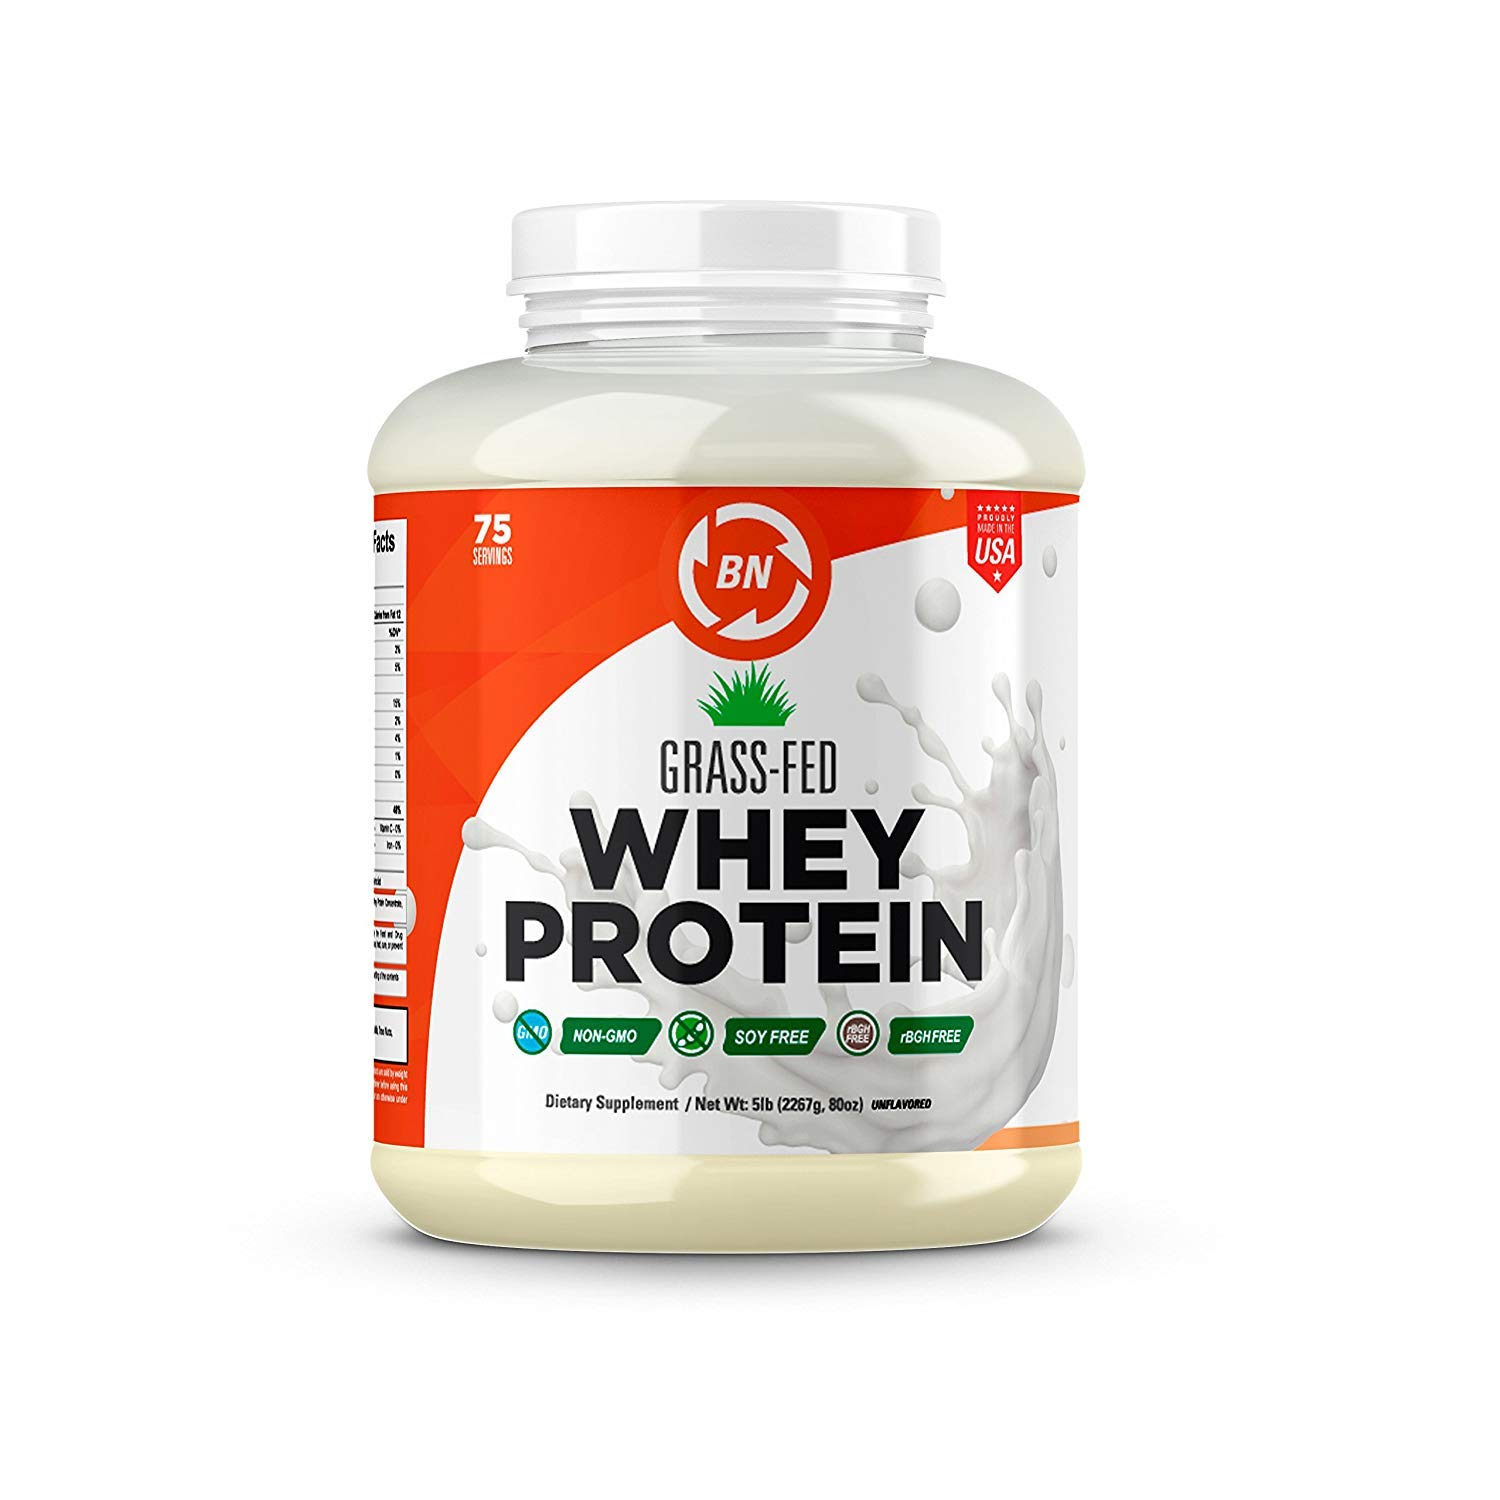 Grass Fed Whey Protein - 100% Pure, Natural & Raw - 24g High Protein - 5lb/75 Servings - Cold Processed Undenatured - Non-GMO - rBGH-Free - High Quality Wisconsin USA (5 lbs) by BN Labs